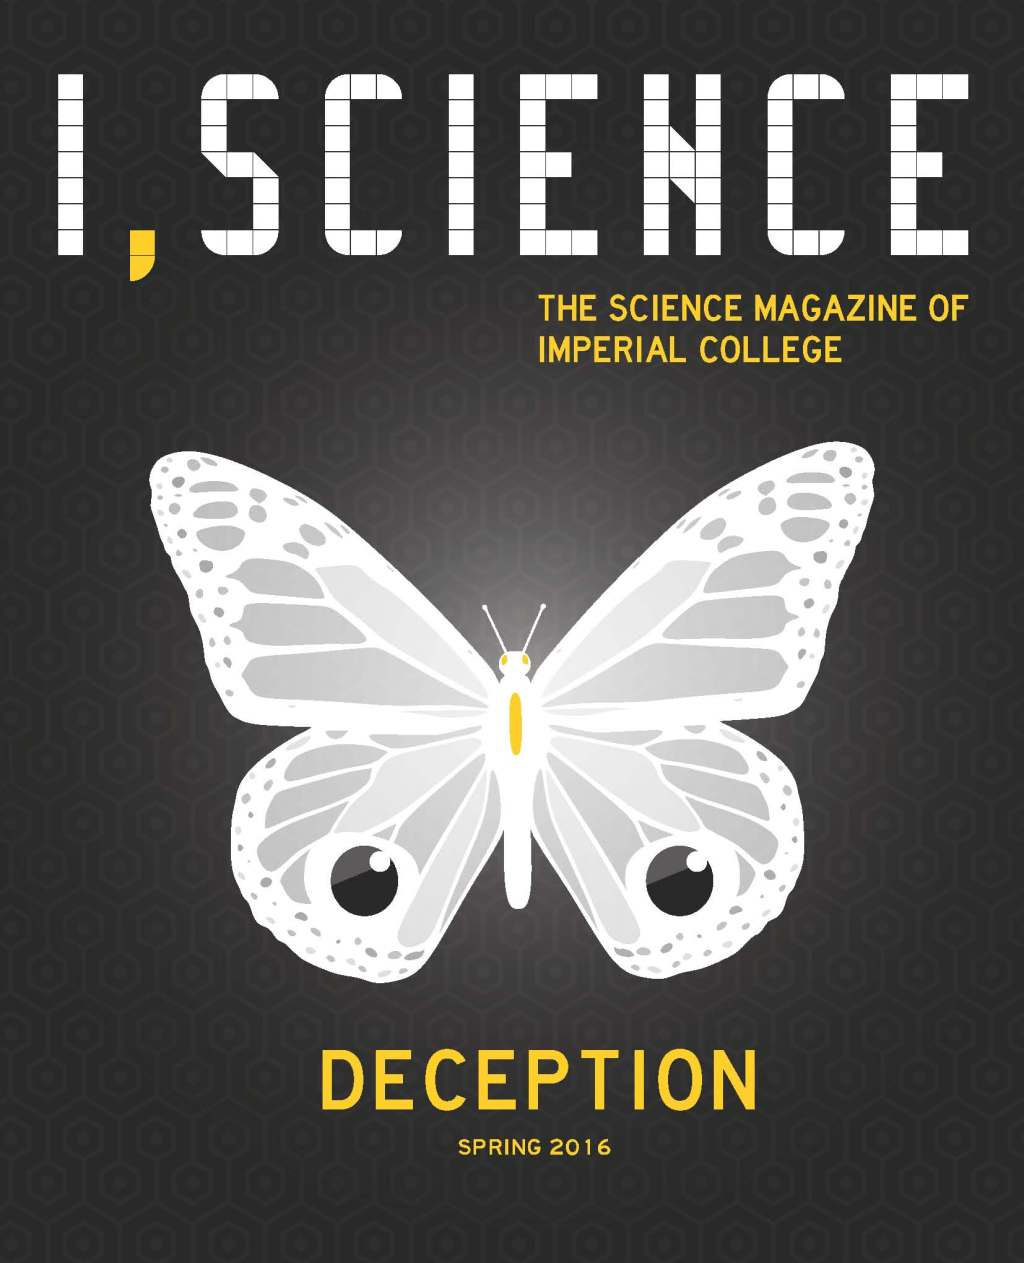 I, Science Magazine Deception Cover Art Issue 33 spring 2016